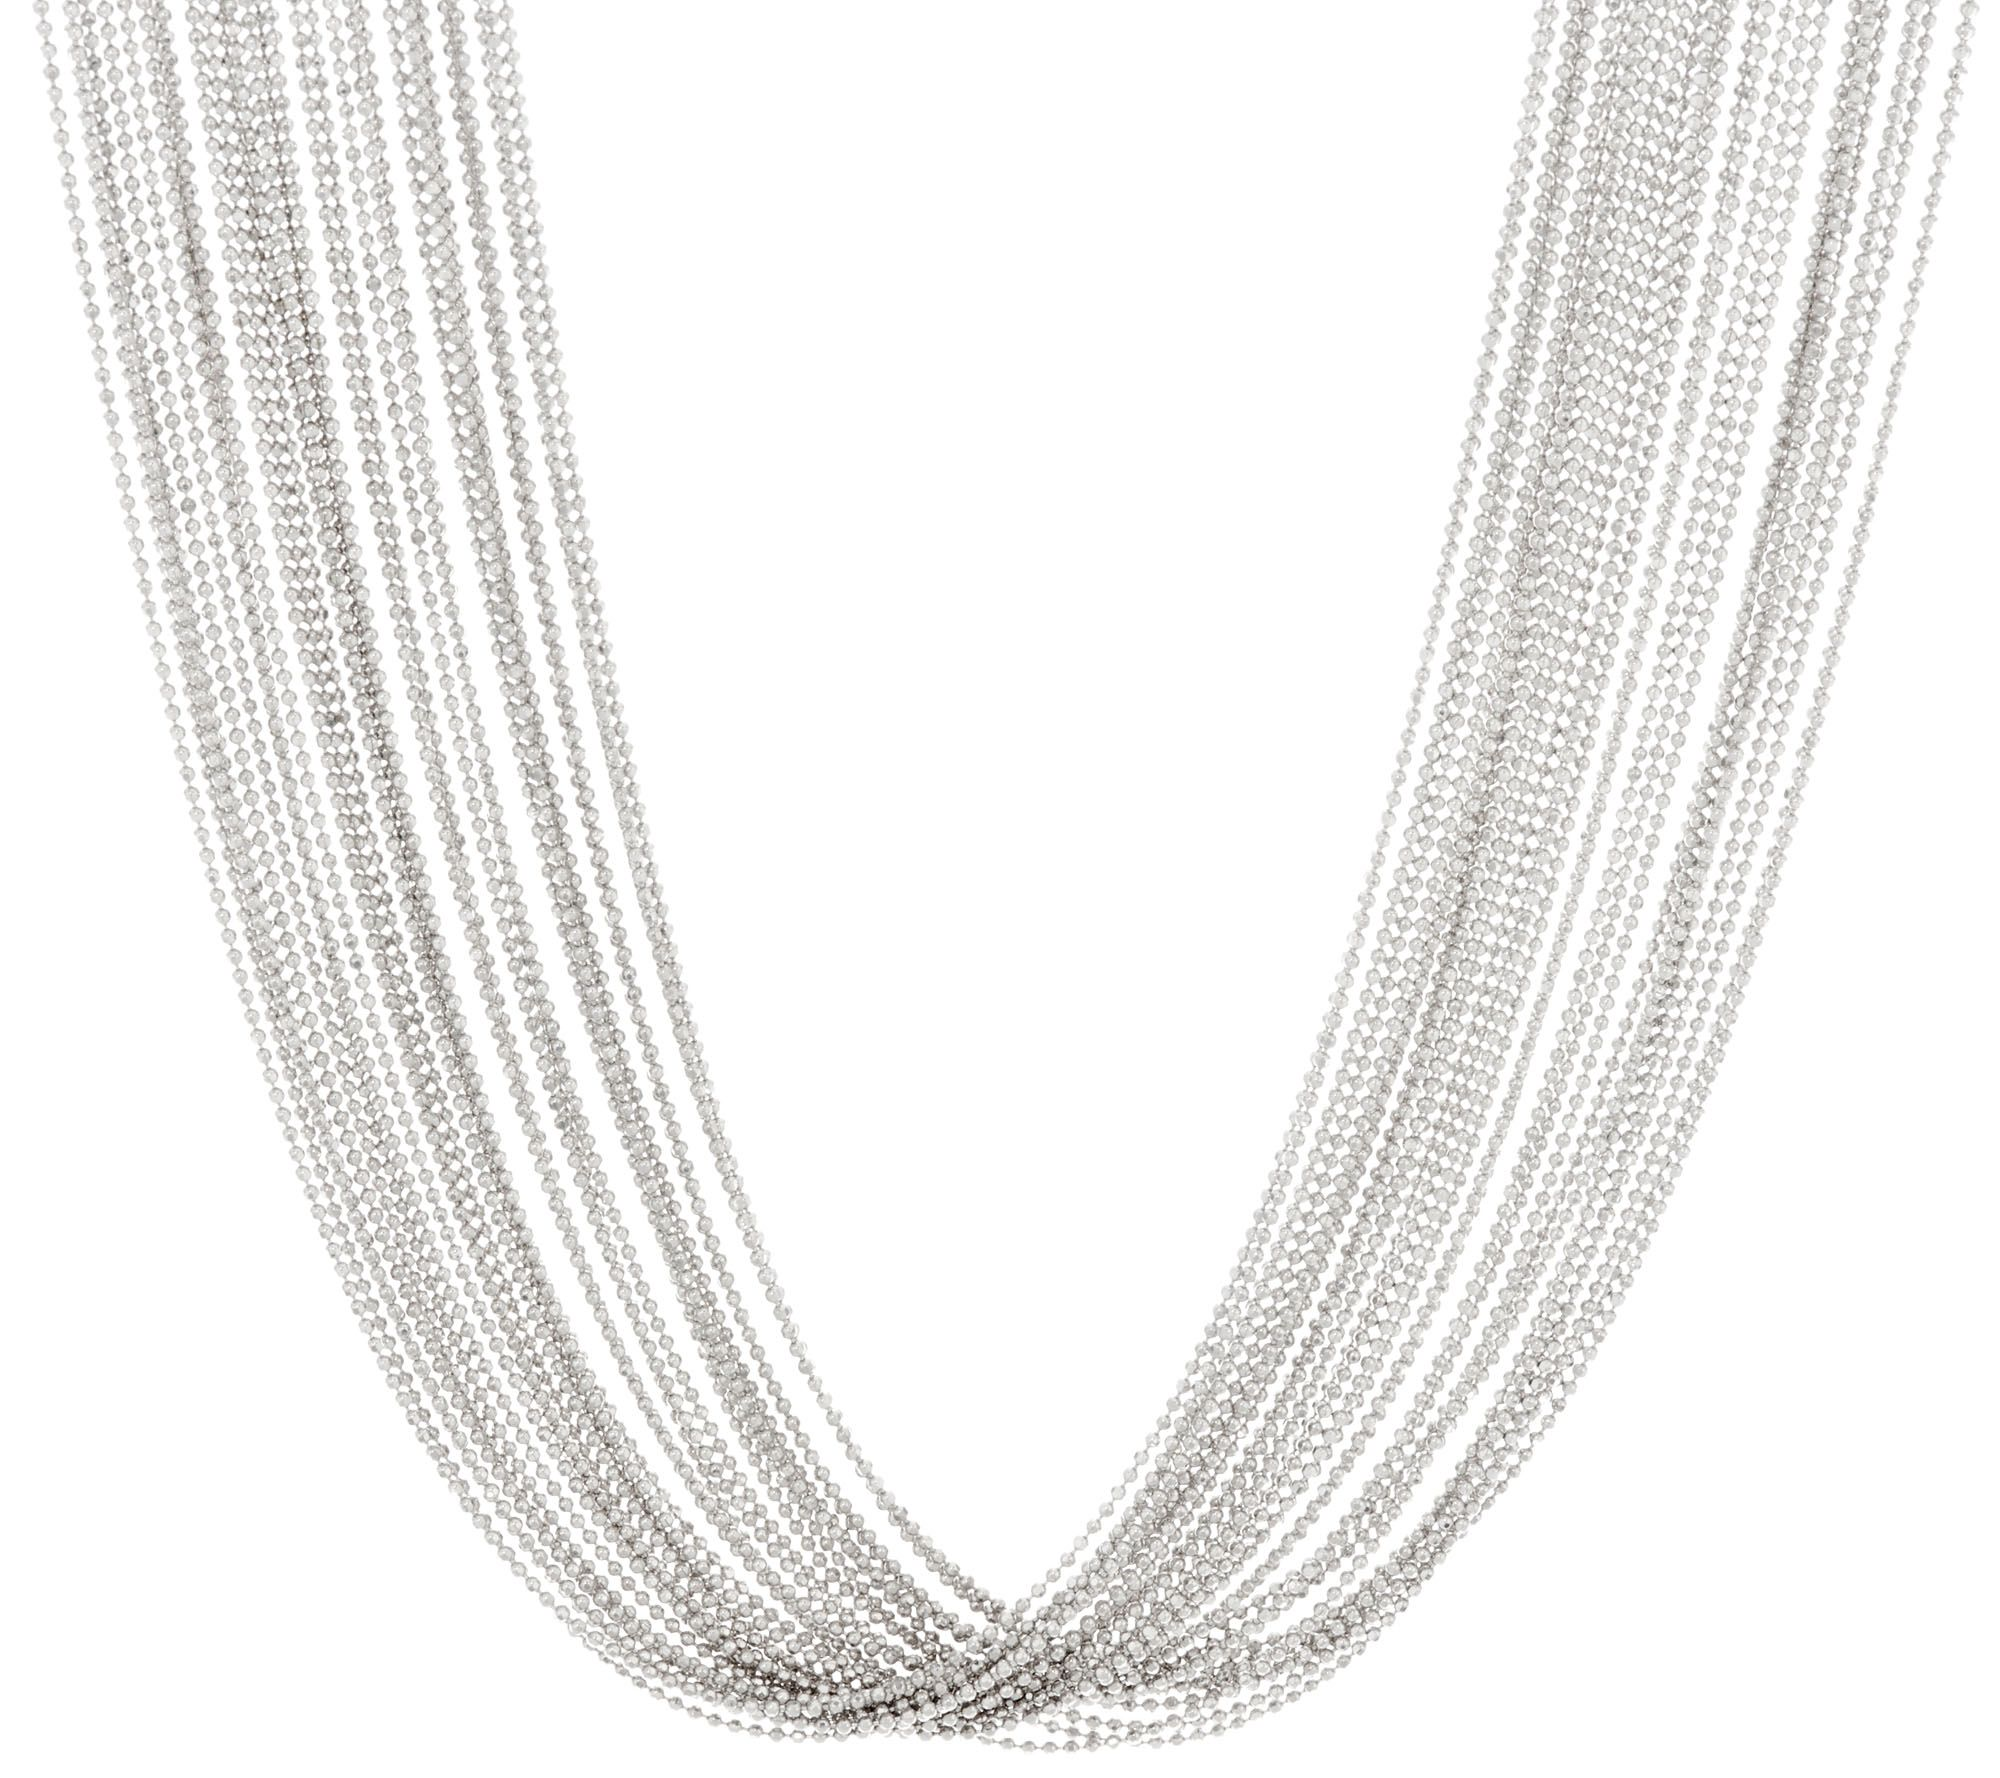 draperie white jewelry decolette necklace strand cartier de yellow diamond gold and multi